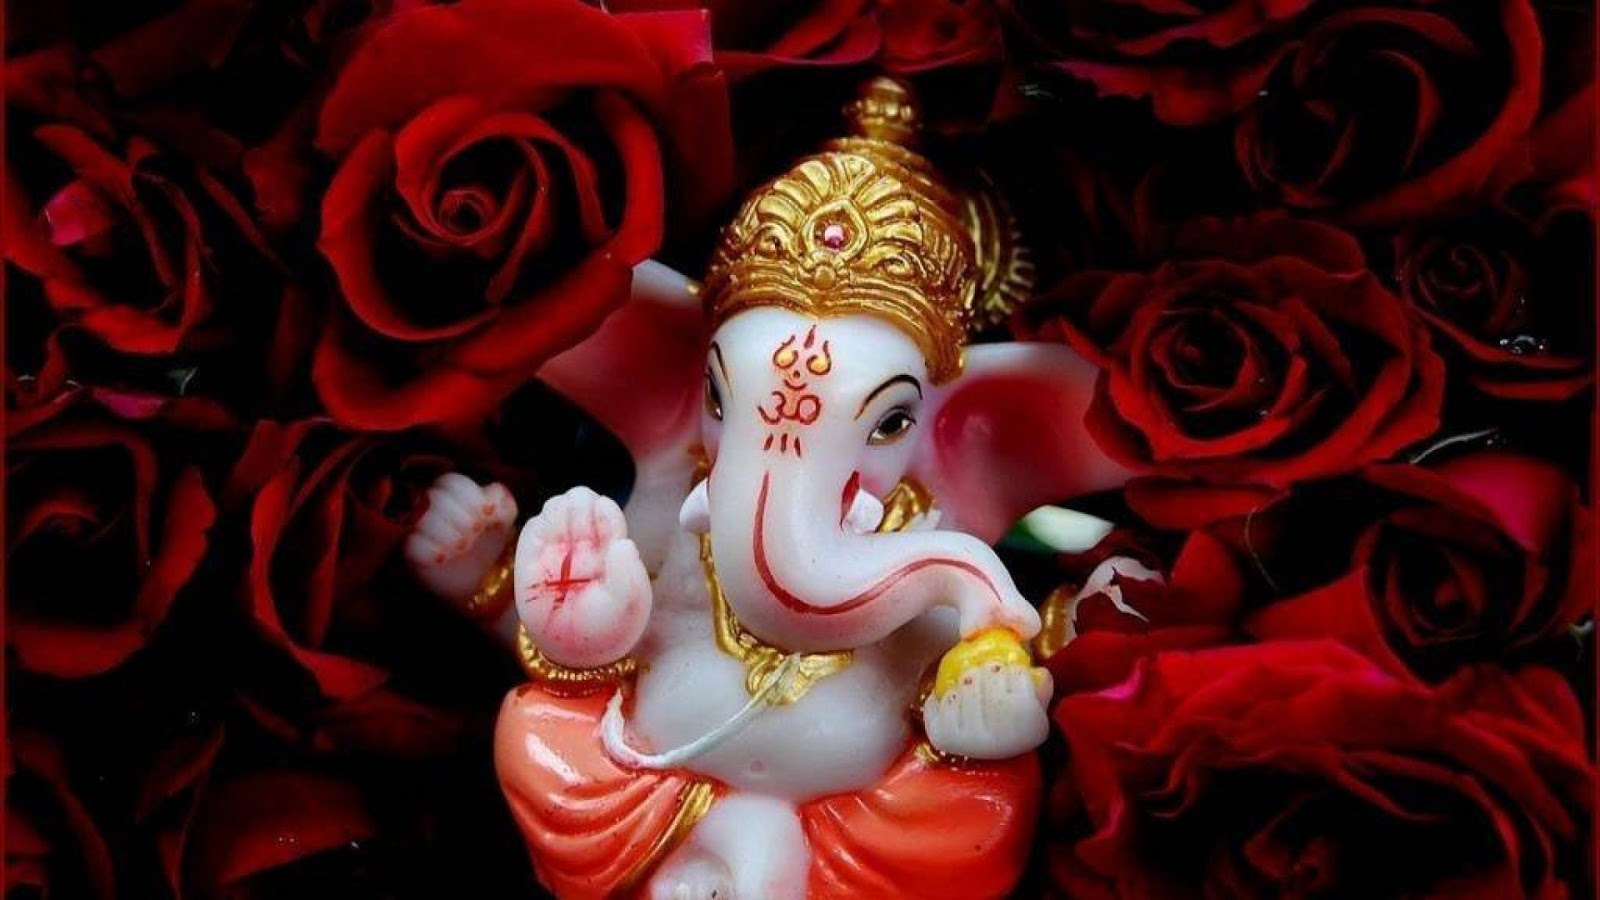 Hd wallpaper ganesh - Here You Can Find Best Collection Of Ganesh Wallpapers And Ganpati Hd Wallpapers For This Ganesh Chaturthi